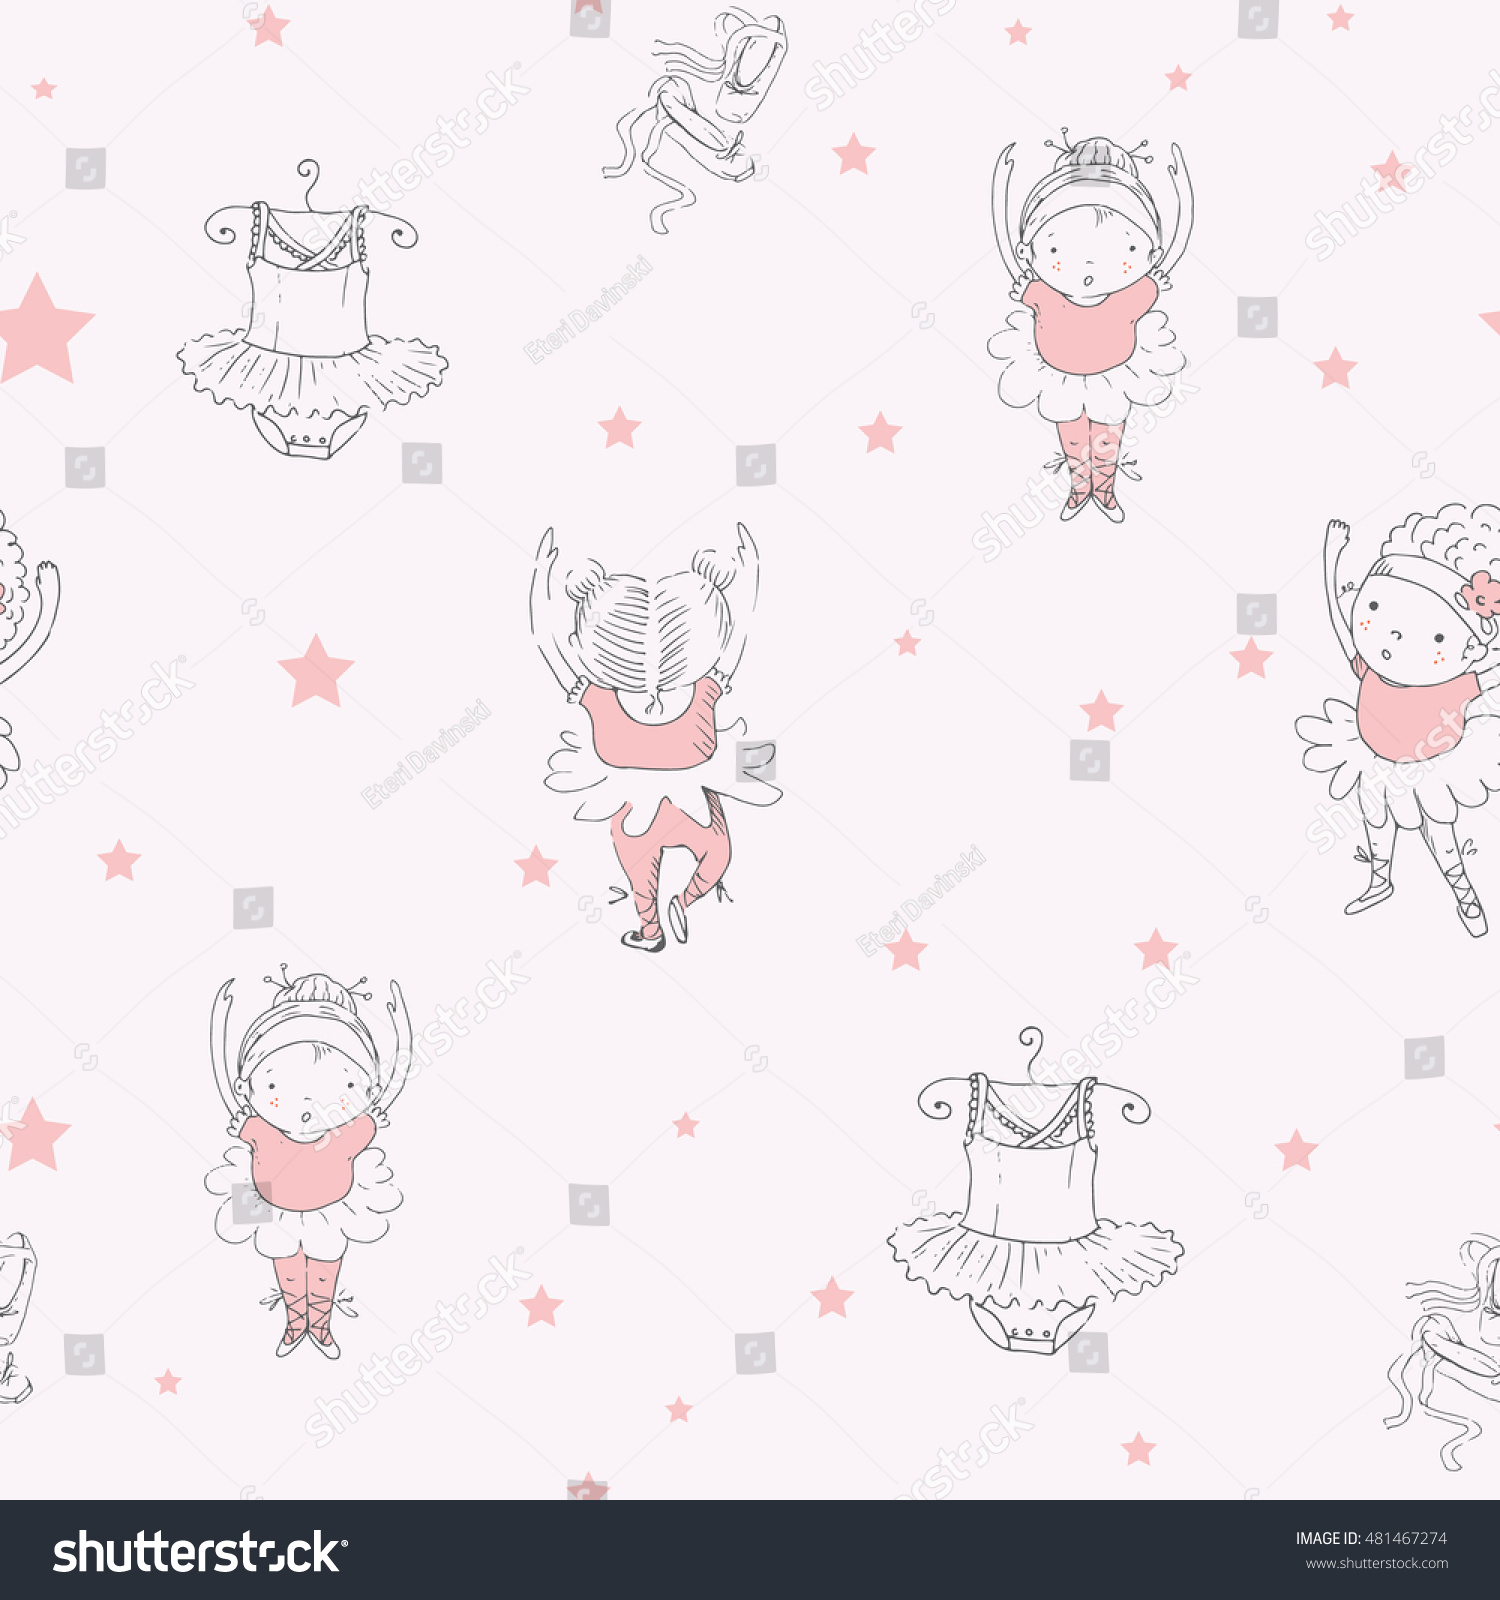 Seamless pattern of ballet dancers royalty free stock photography - Ballet Dancer Seamless Pattern With Ballerinas Can Be Used For Kid S Or Baby S Shirt